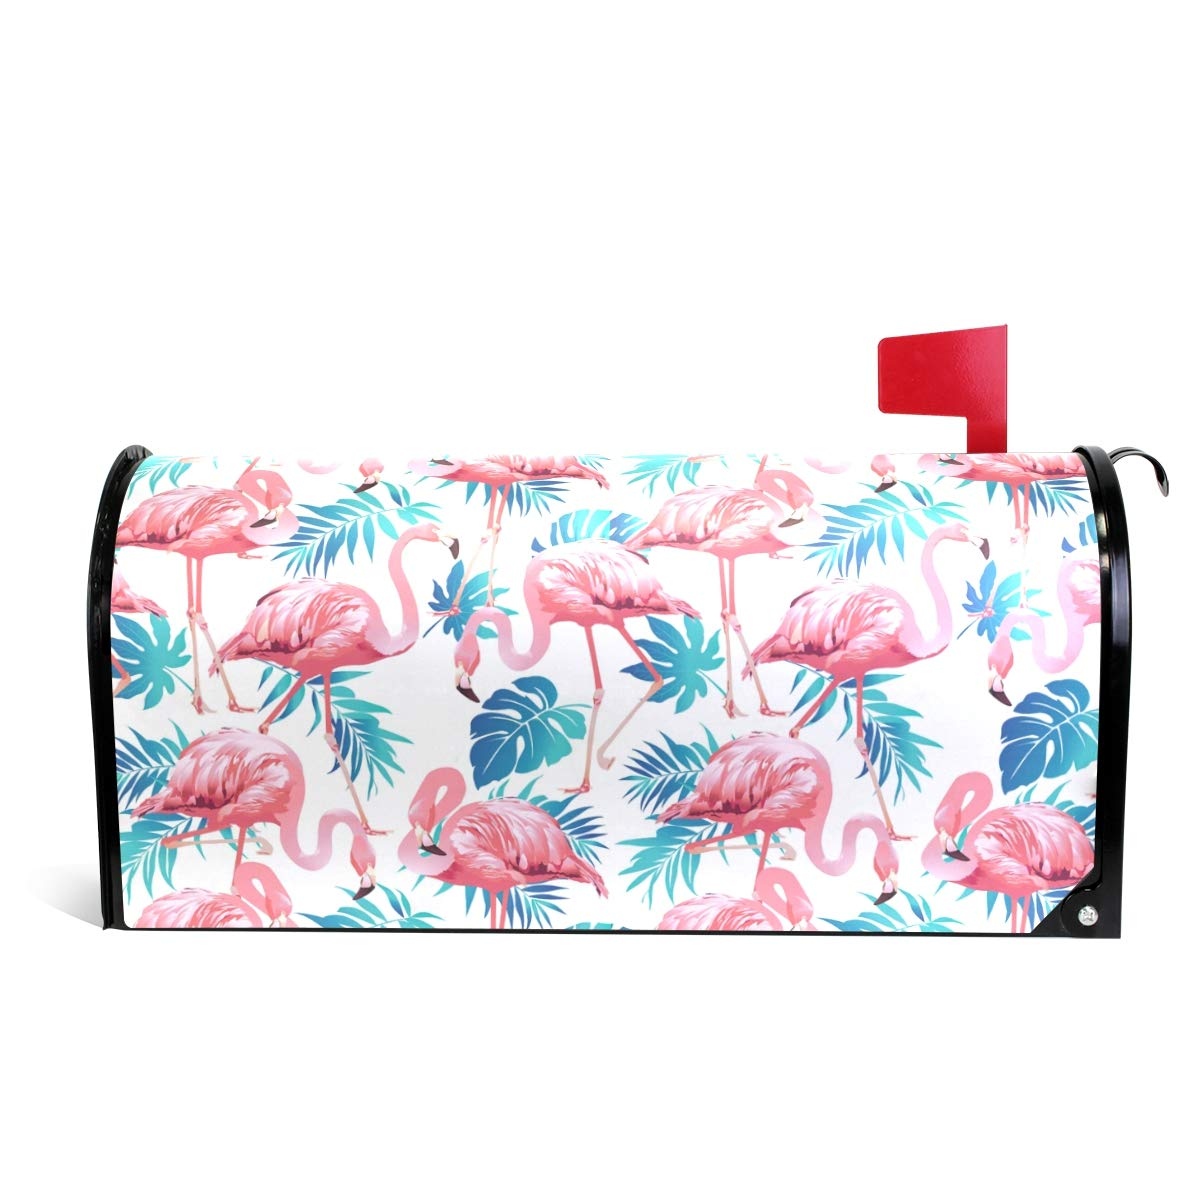 Fengye Pink Flamingo Palm Summer Mailbox Magnetic Cover Medium Large Capacity Post Box Covers